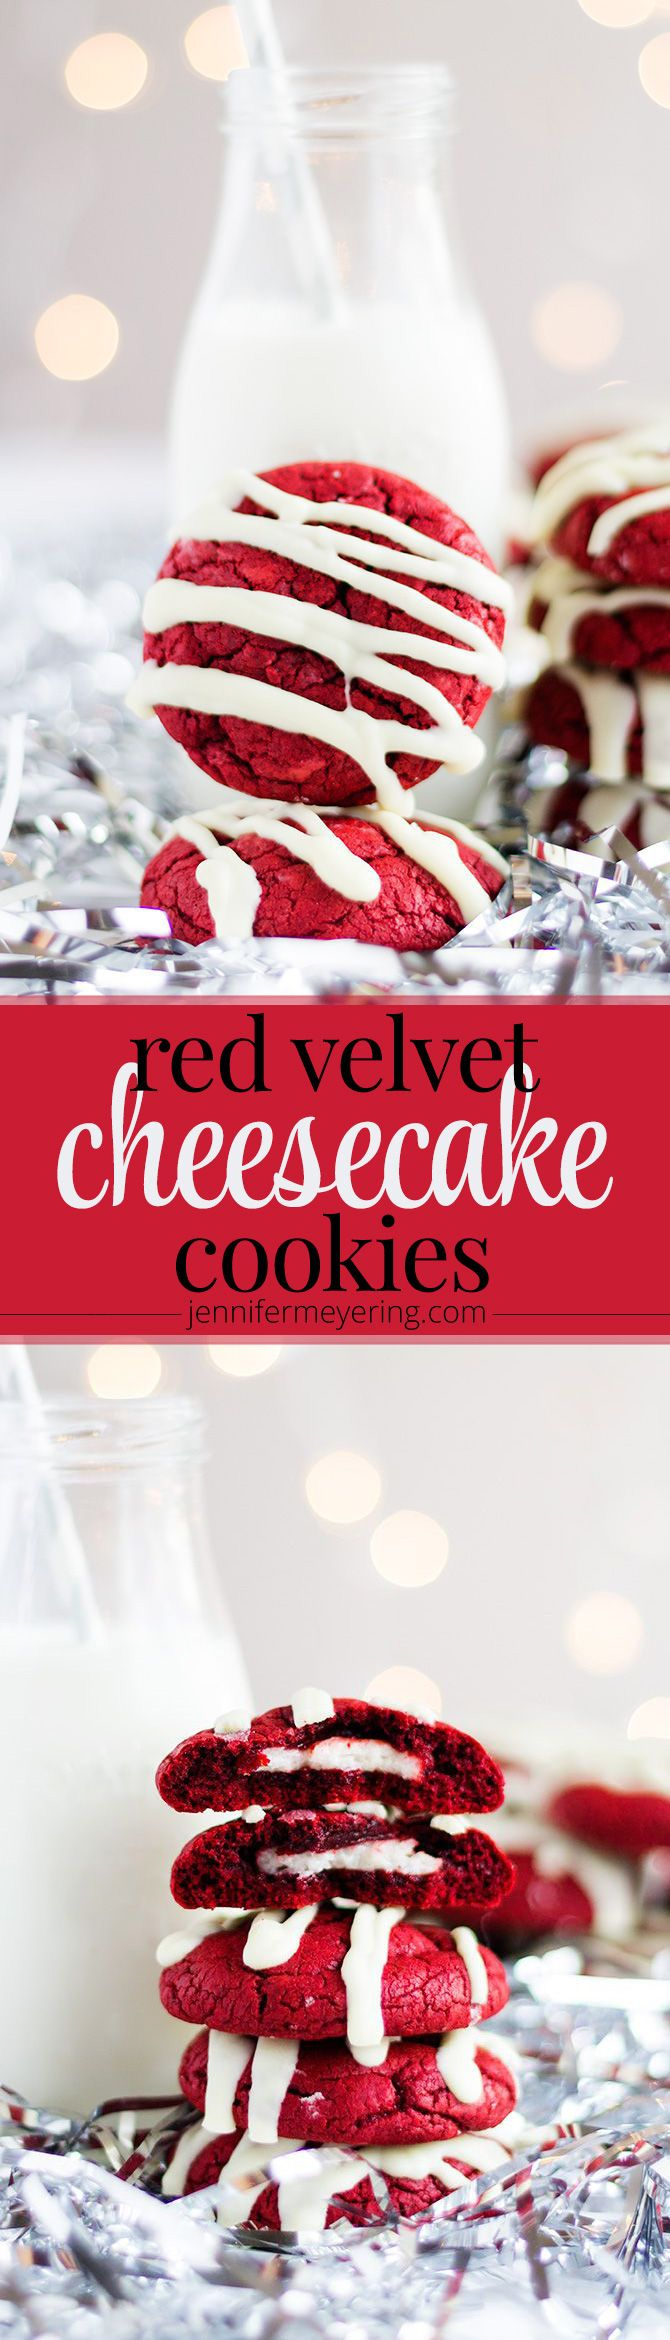 Red Velvet Cheesecake Cookies